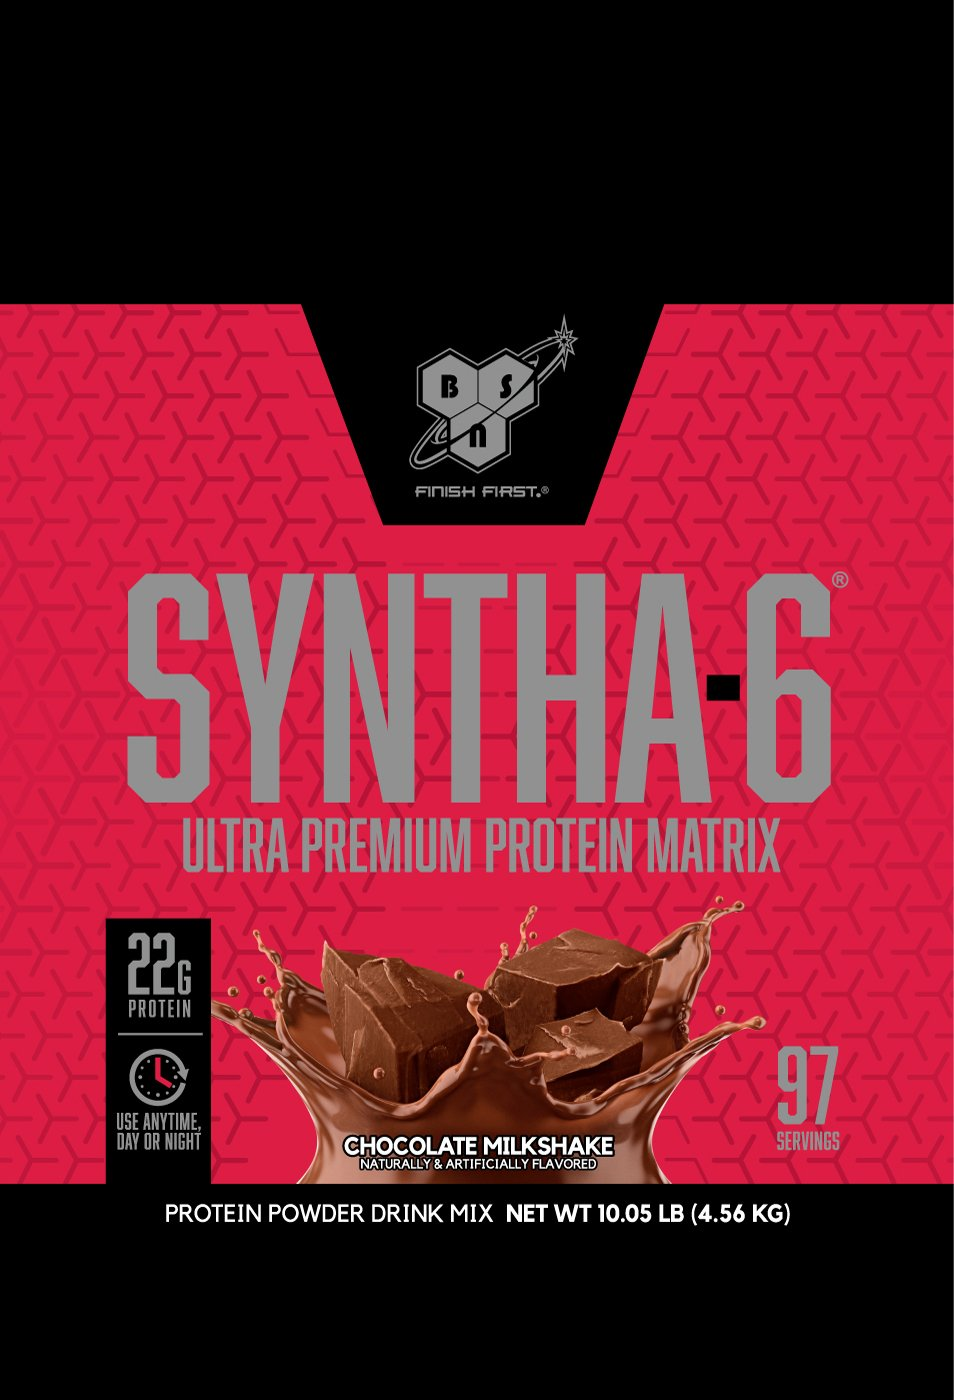 BSN SYNTHA-6 Whey Protein Powder, Micellar Casein, Milk Protein Isolate Powder, Chocolate Milkshake, 97 Servings (Package May Vary) by BSN (Image #3)